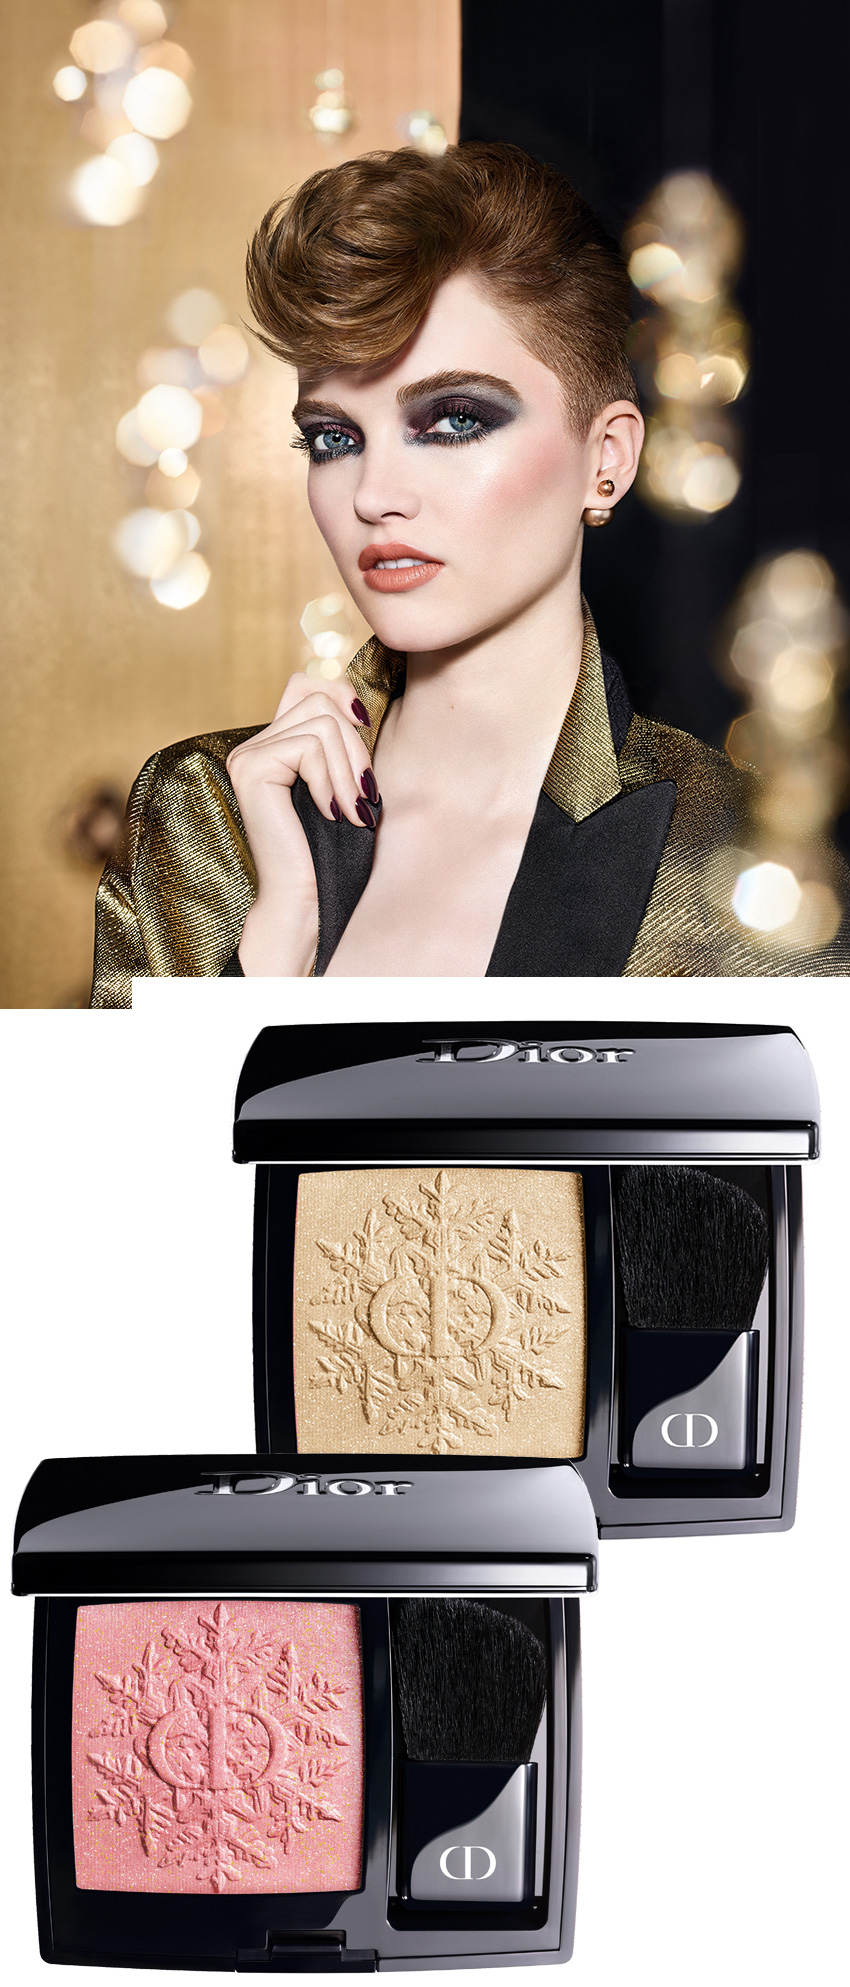 Dior Rouge Blush for the Golden Nights Dior Makeup 2020 Holiday collection in Perfect Wedding Magazine